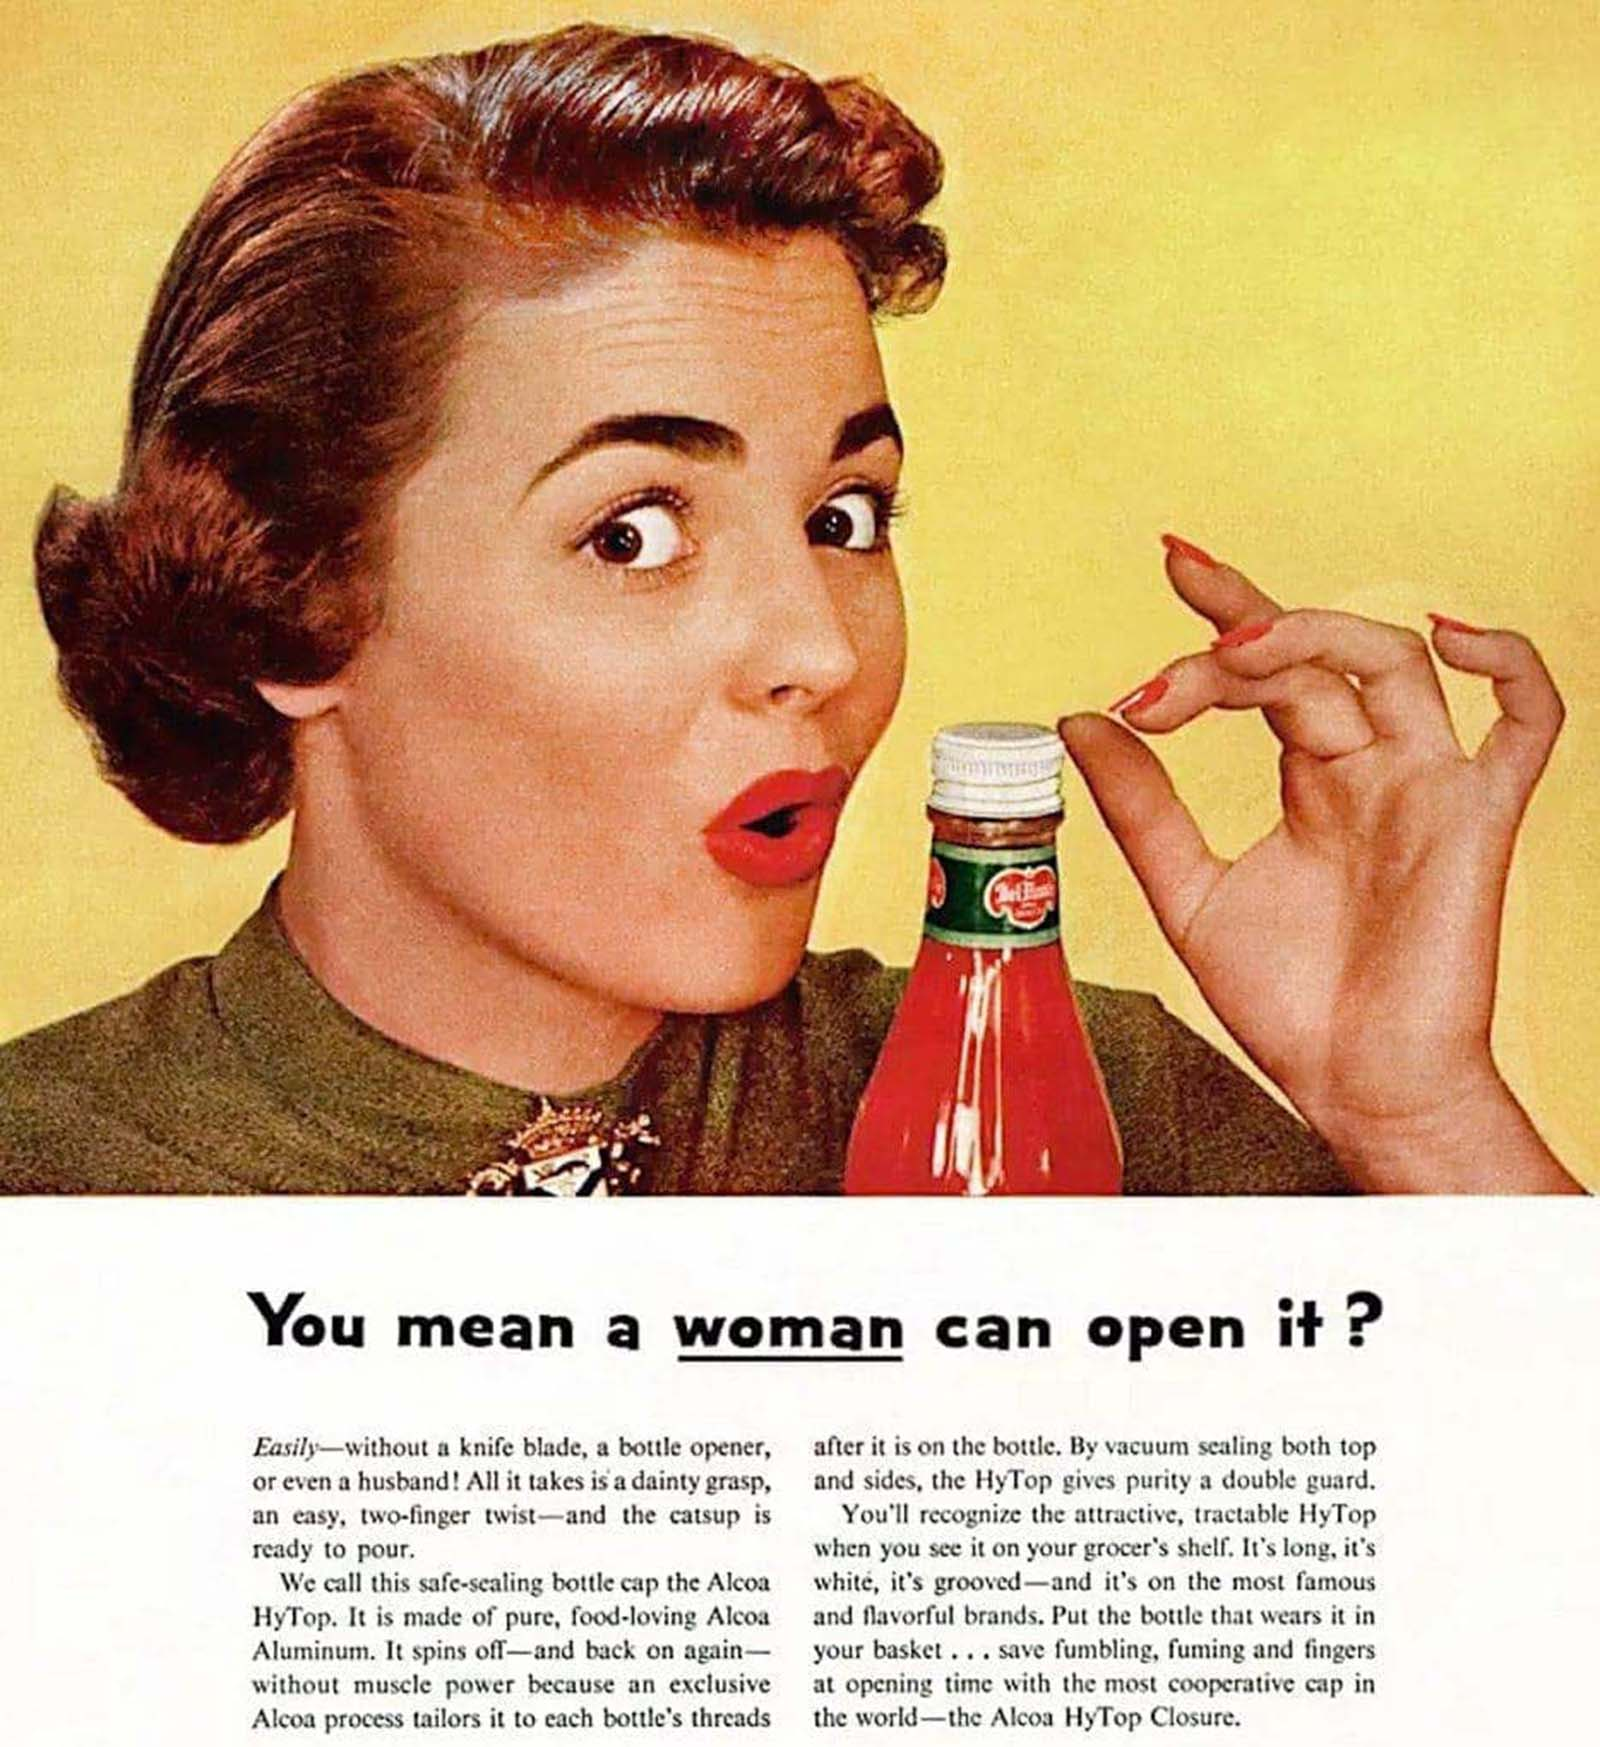 vintage sexist offensive ads